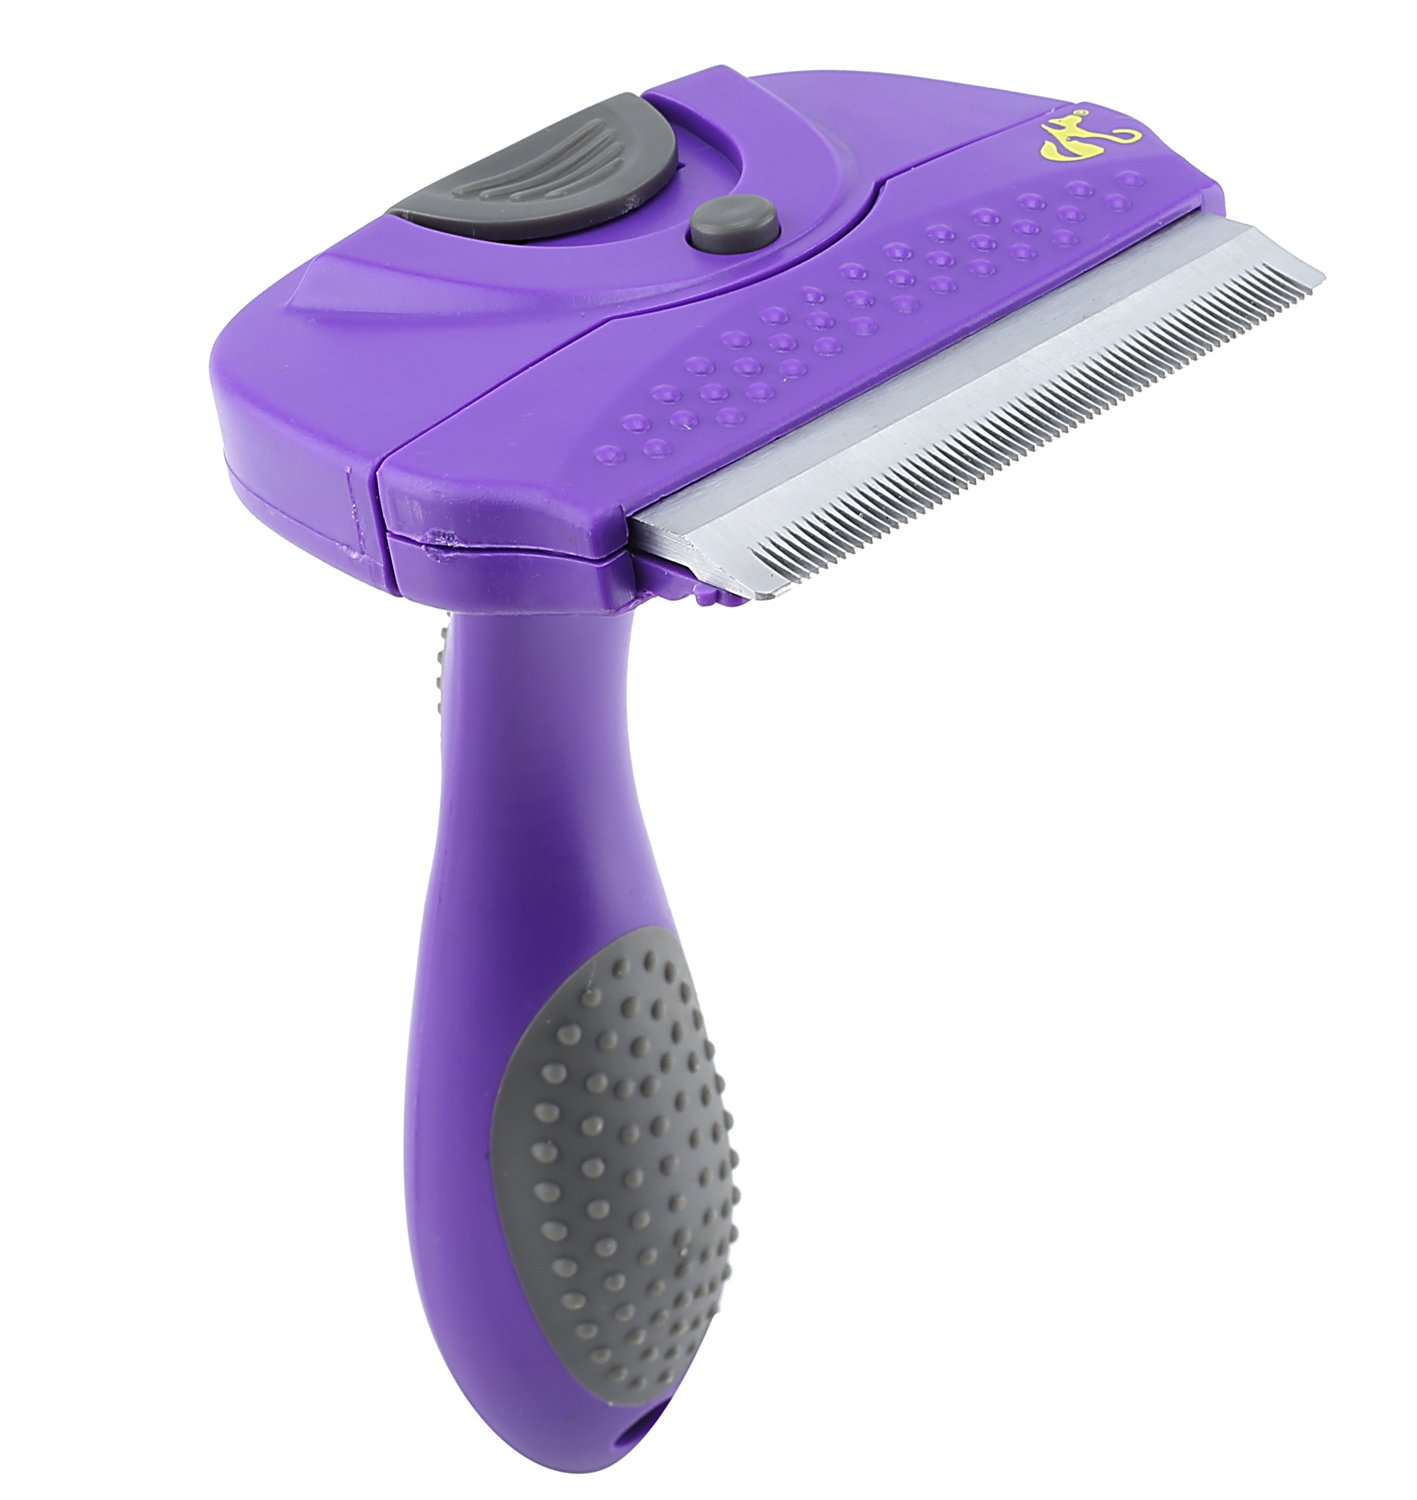 Hertzko Dog Brush & Cat Brush by For Small, Medium & Large Dogs and Cats, With Short to Long Hair. Pet Comb Dramatically Reduces Shedding